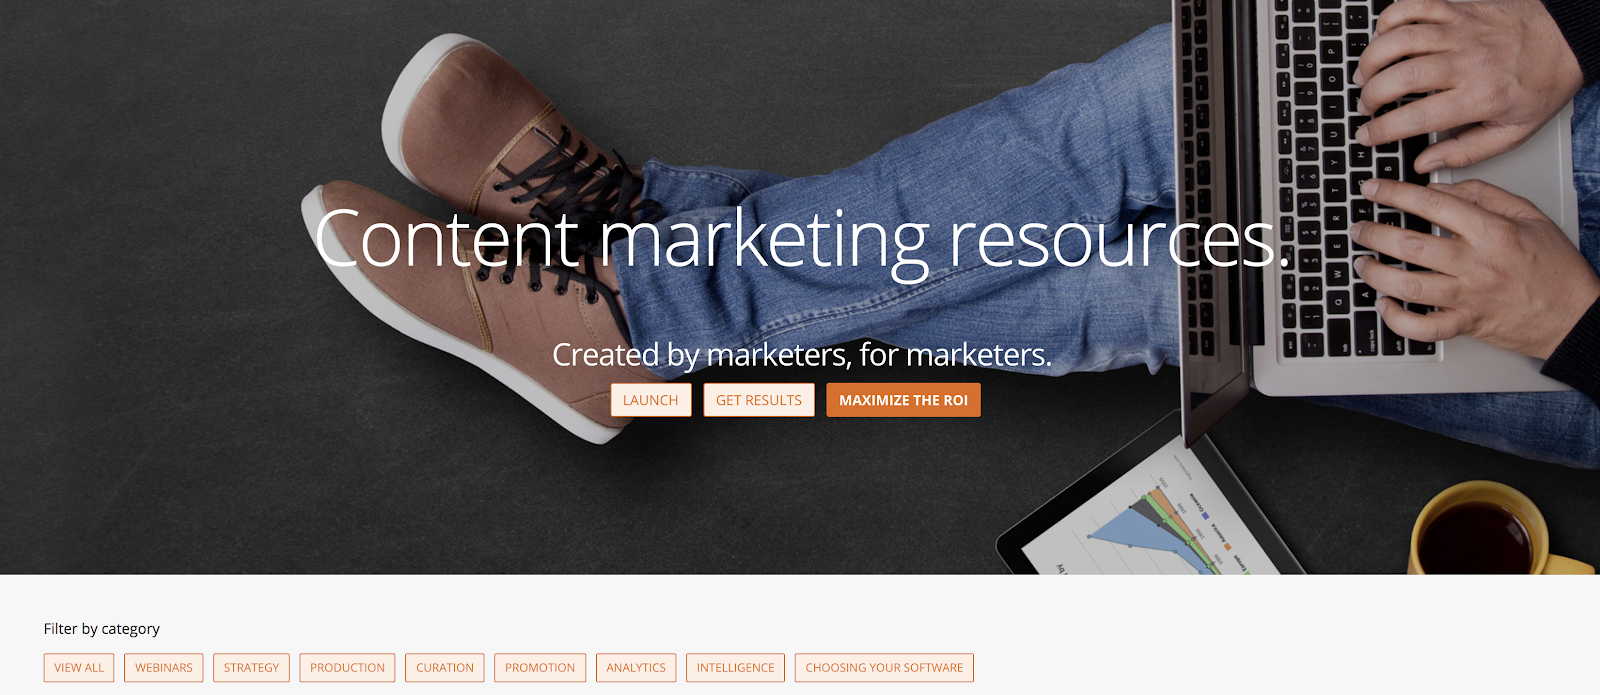 Content hub example from Scoop.it